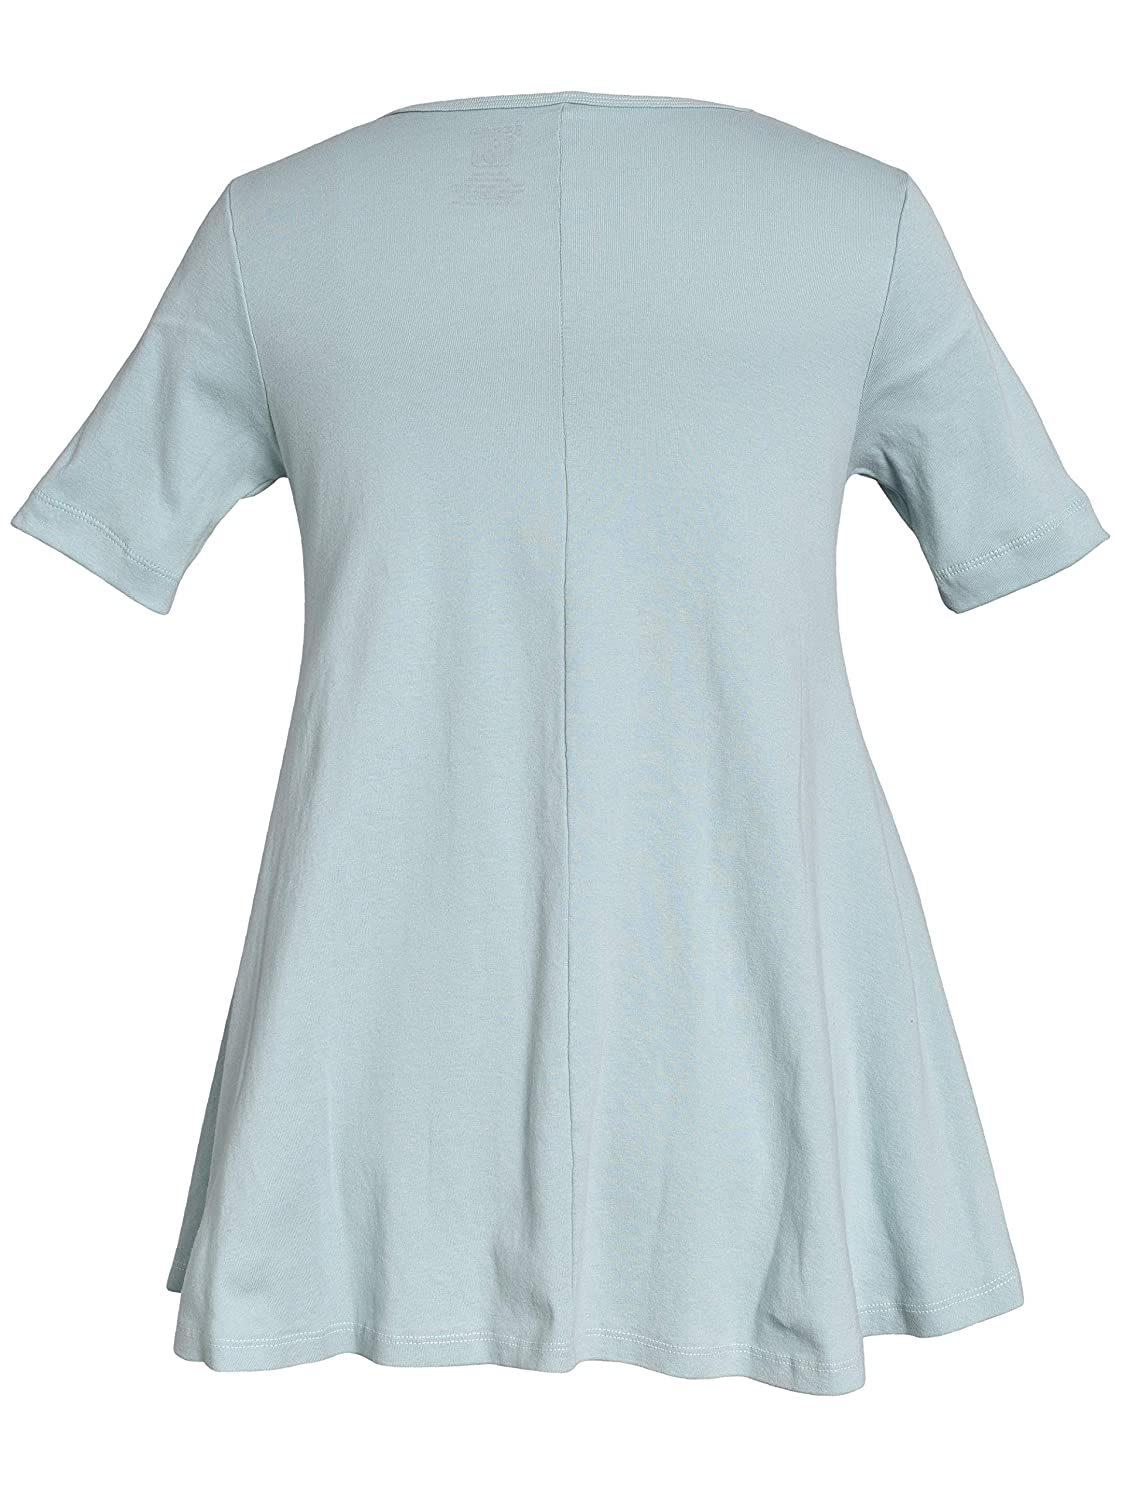 Green 3 Womens Short Sleeve Baby Doll Tunics